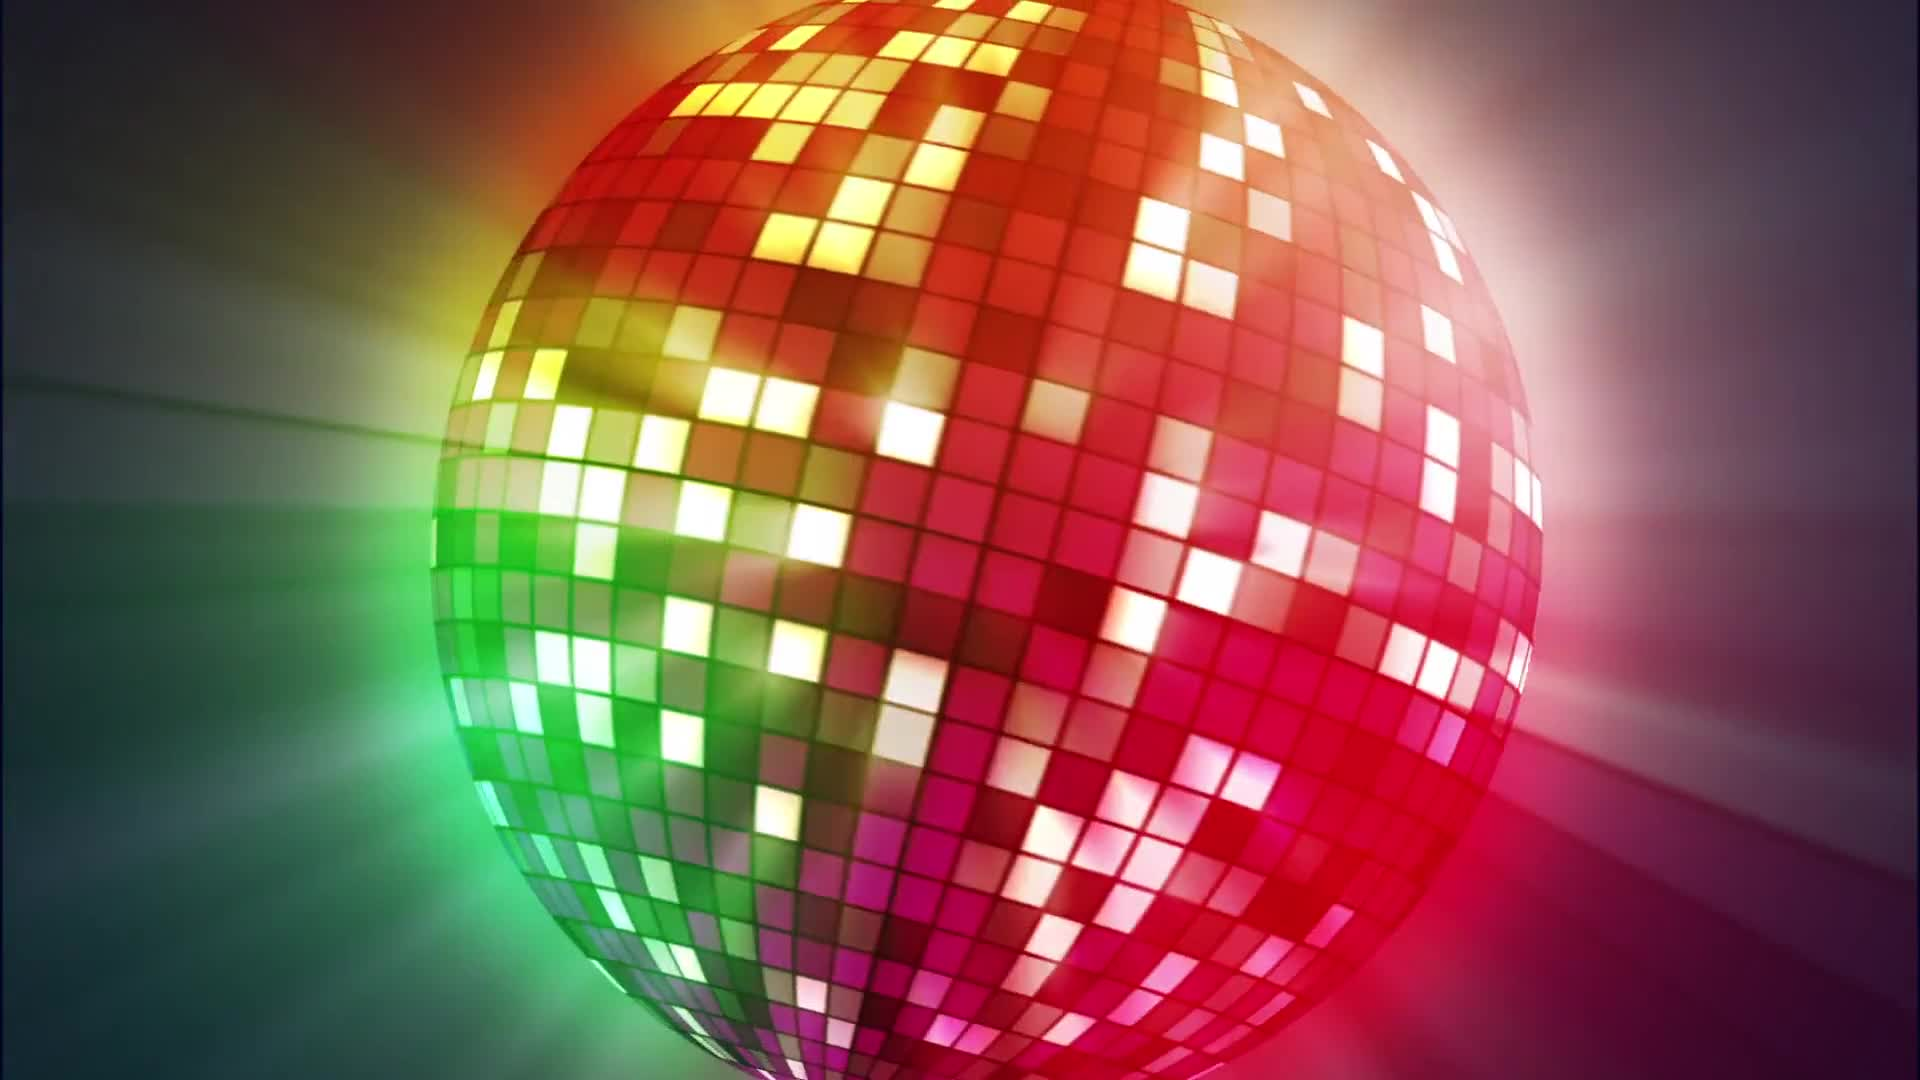 Disco ball disco retro music